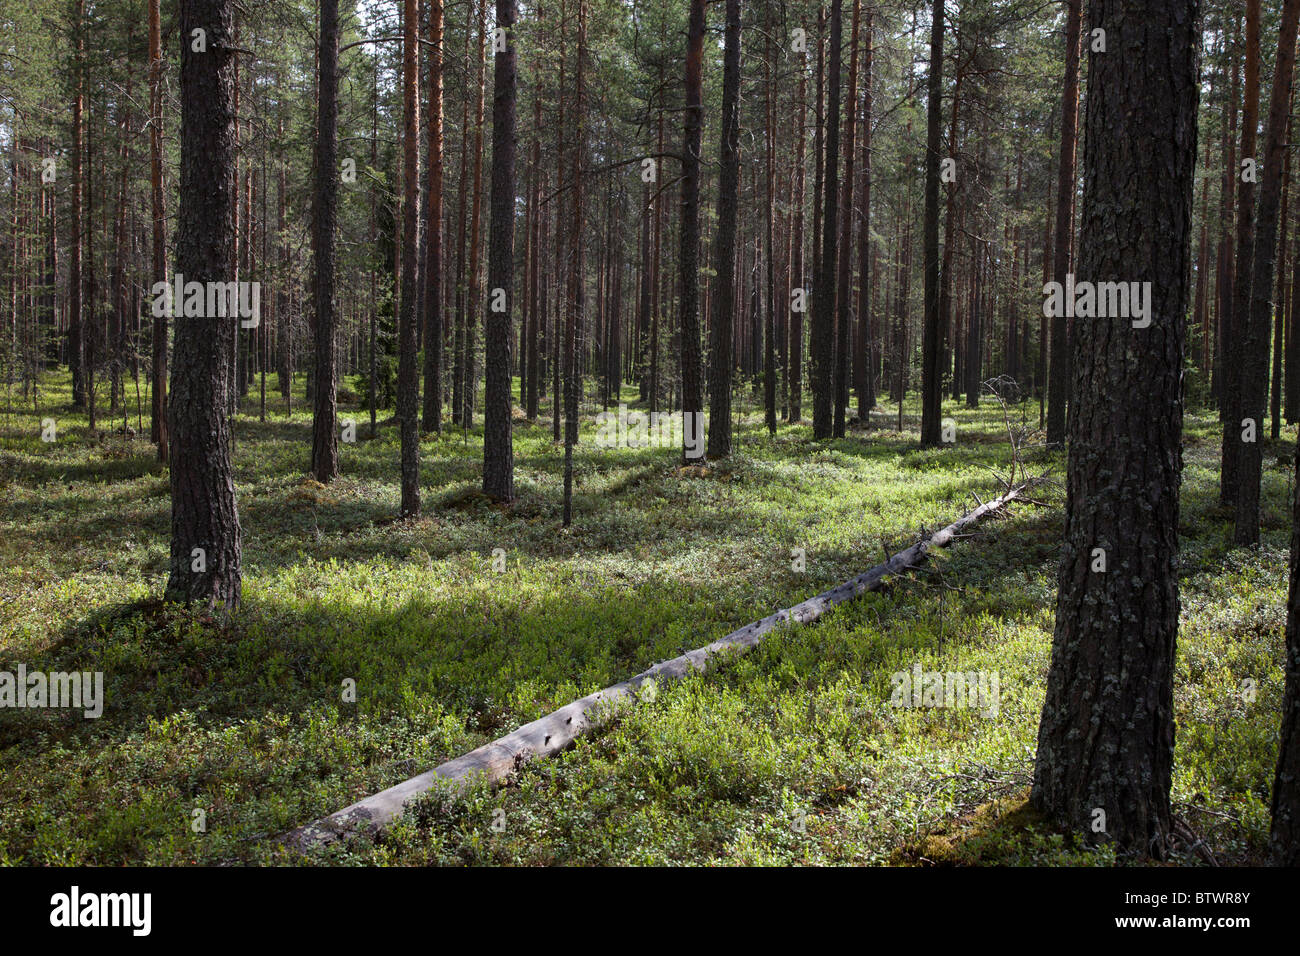 Young Finnish pine ( pinus sylvestris ) forest on dry esker based soil , undergrowth mainly of blueberry shrubs - Stock Image